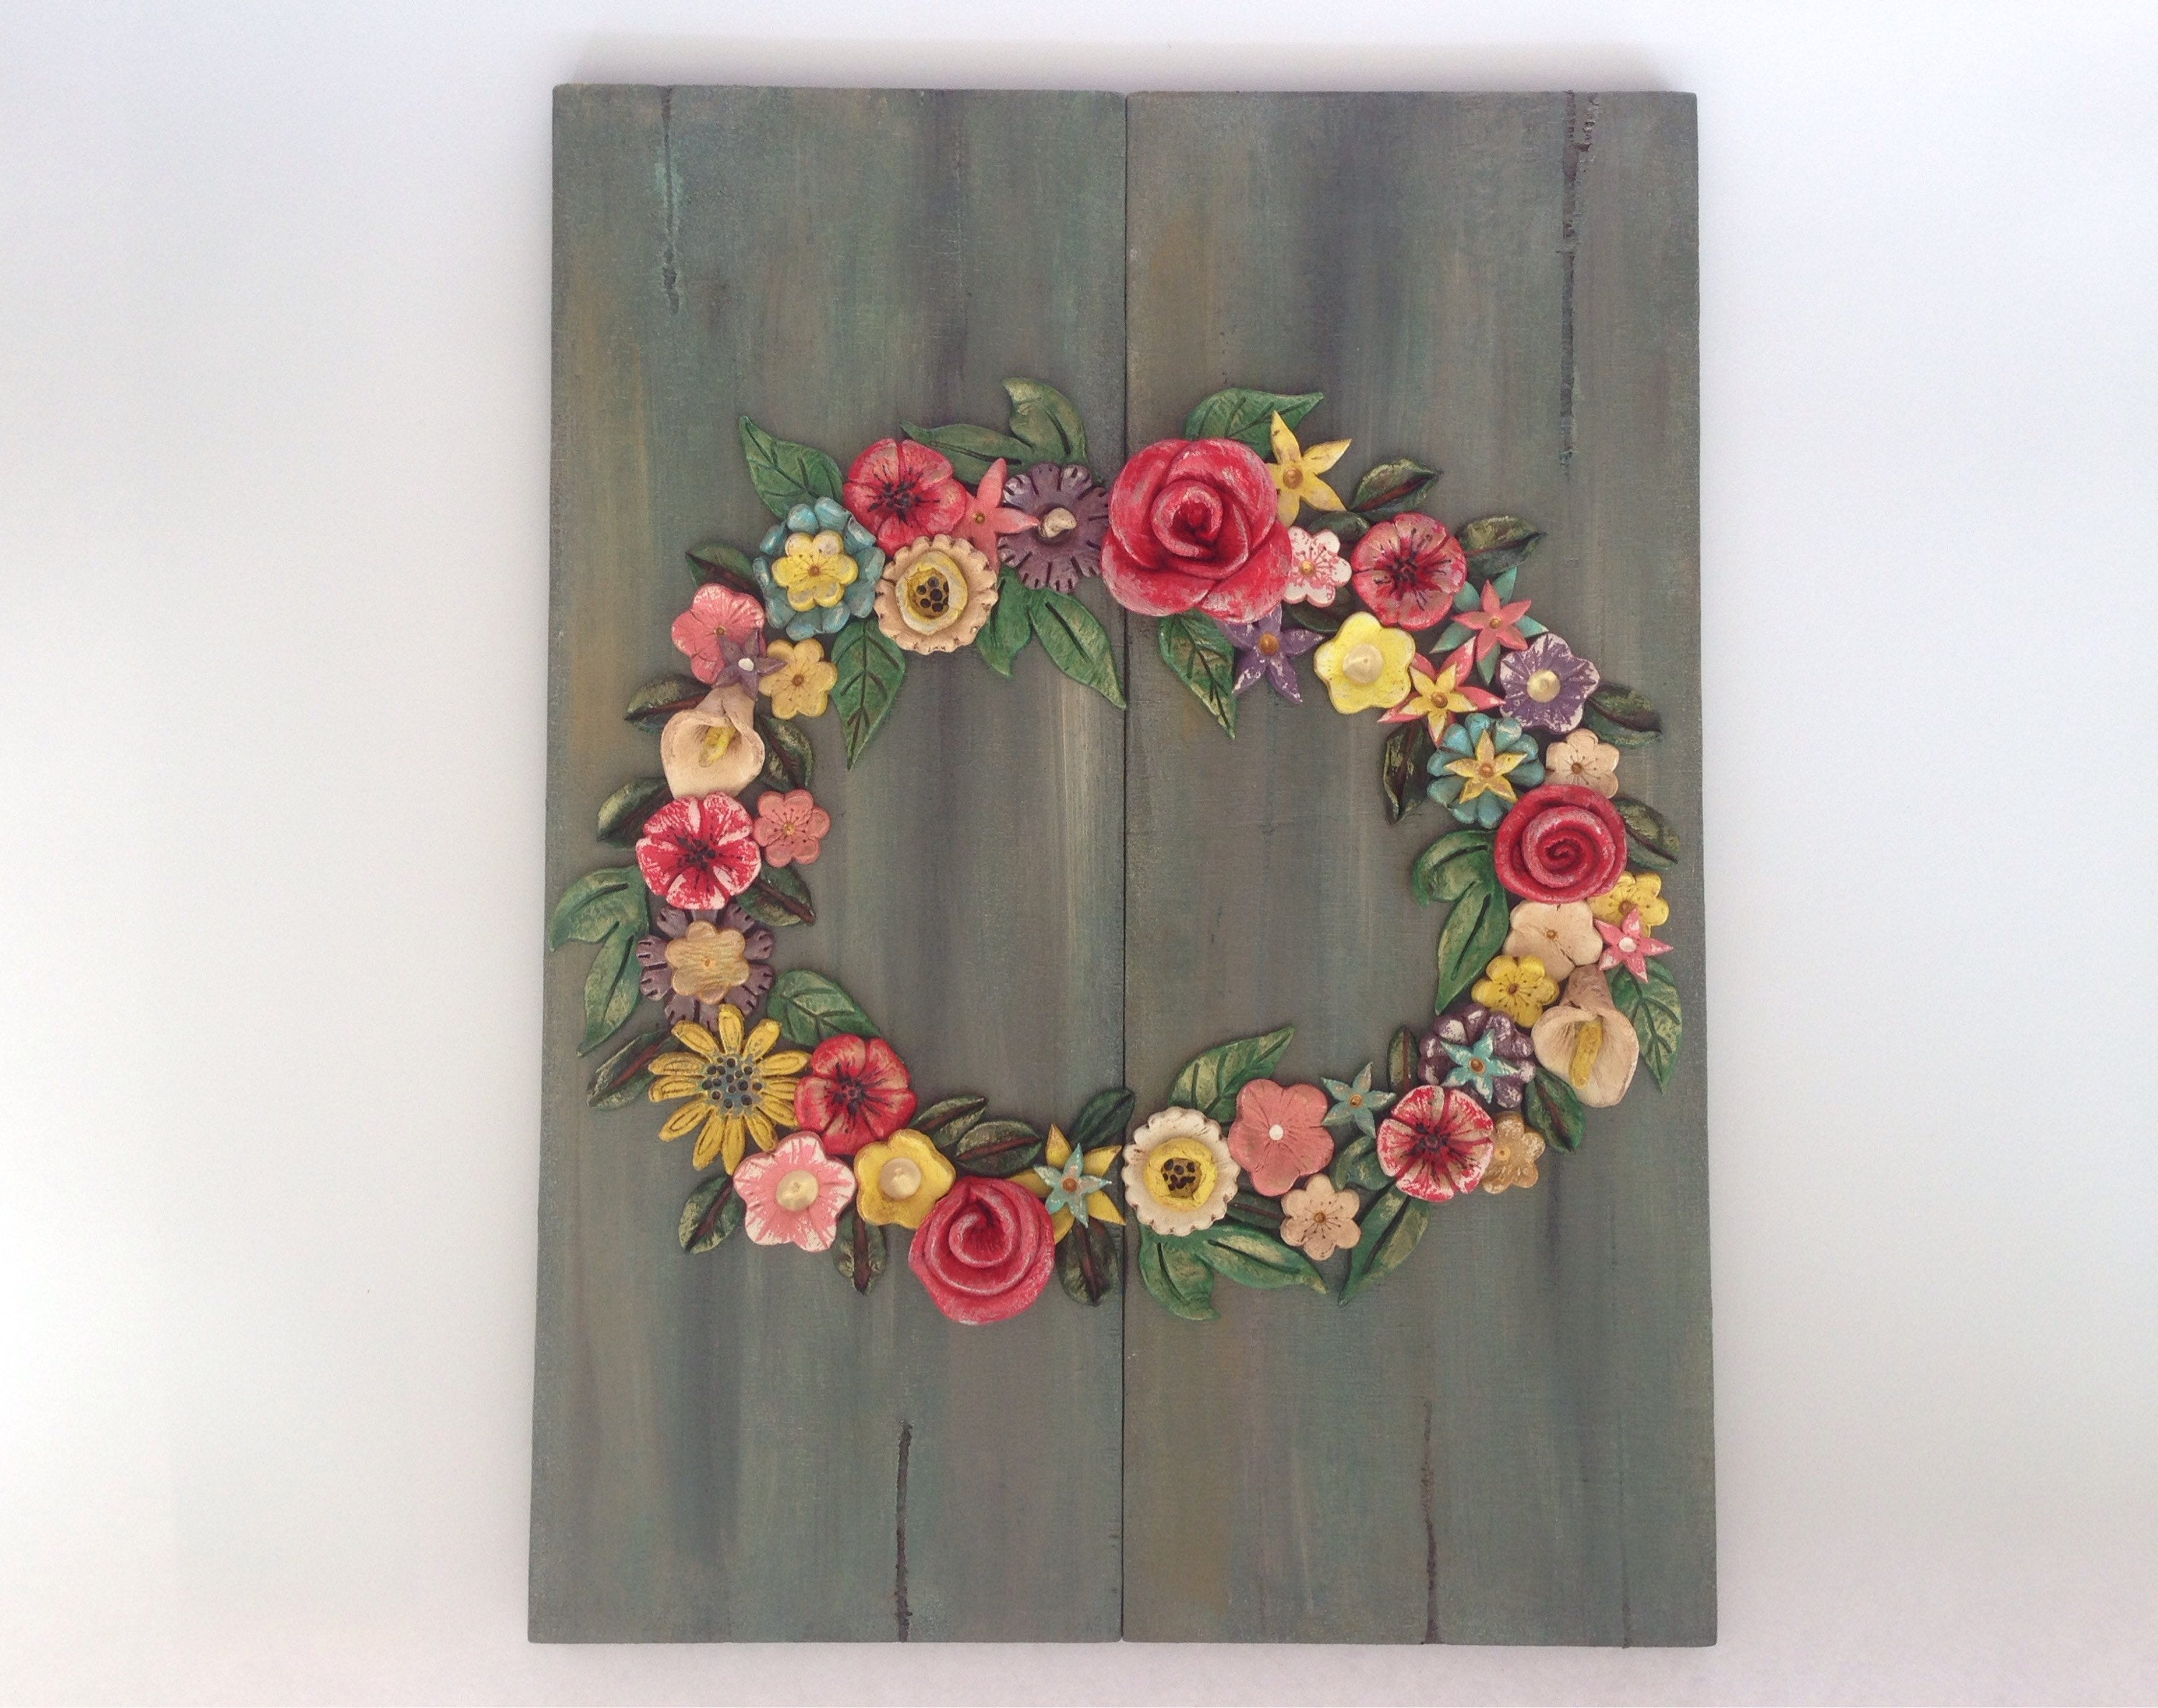 Flower Wreath Ceramic Wreath Clay Wreath On Wood Romantic (View 8 of 20)